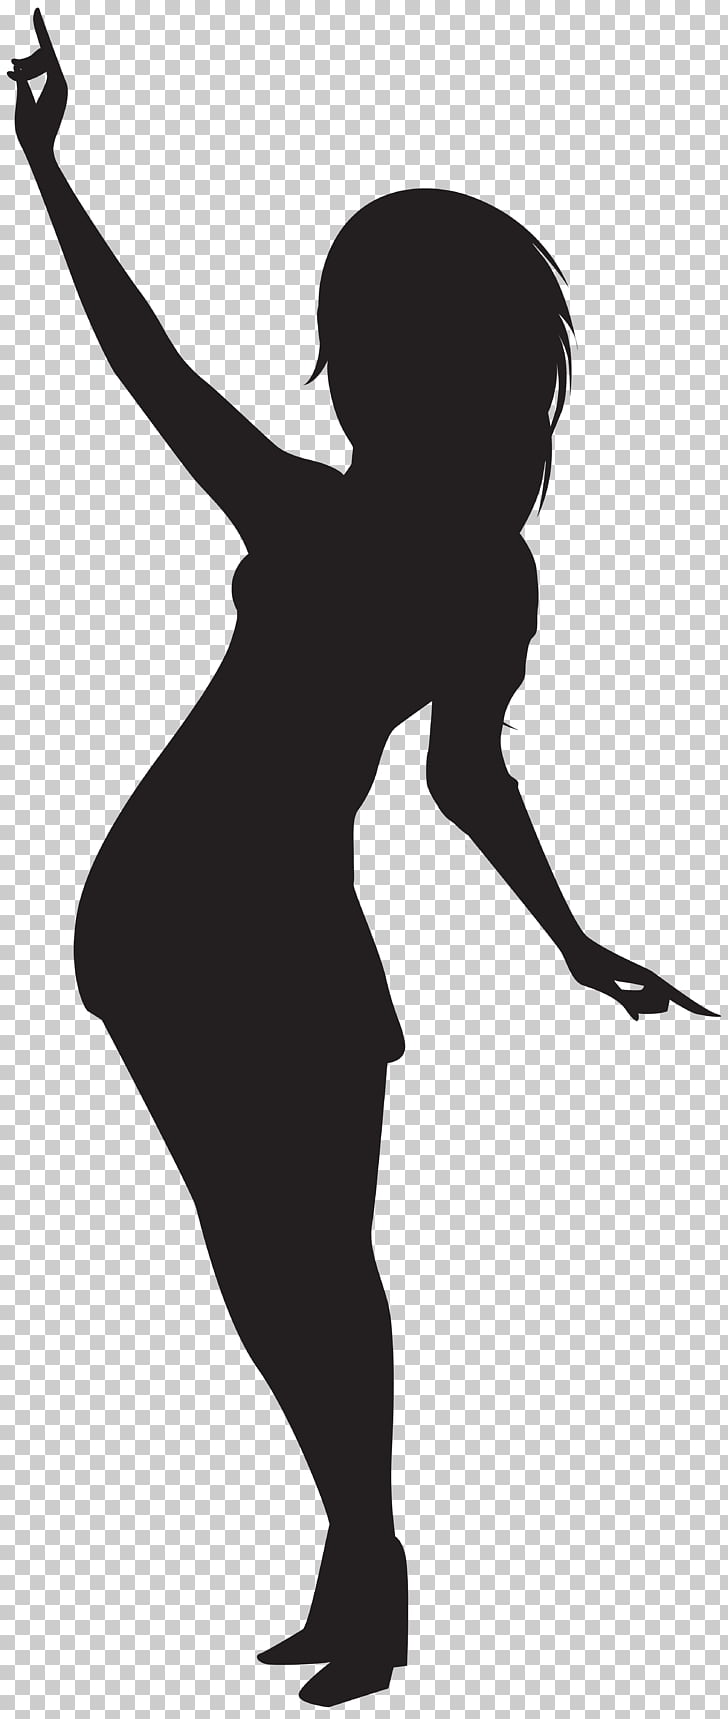 Silhouette Girl Scalable Graphics, Dancing Girl Silhouette.